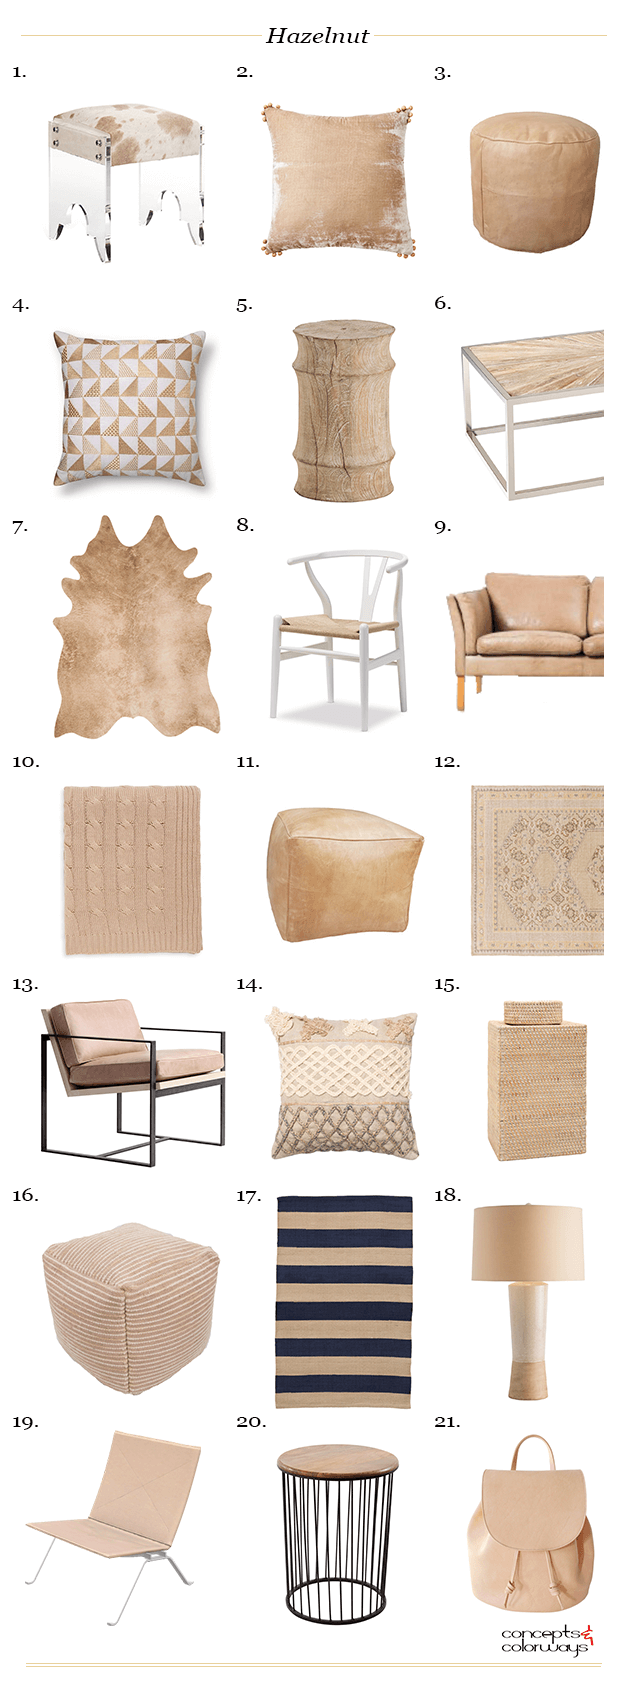 pantone hazelnut interior design product roundup